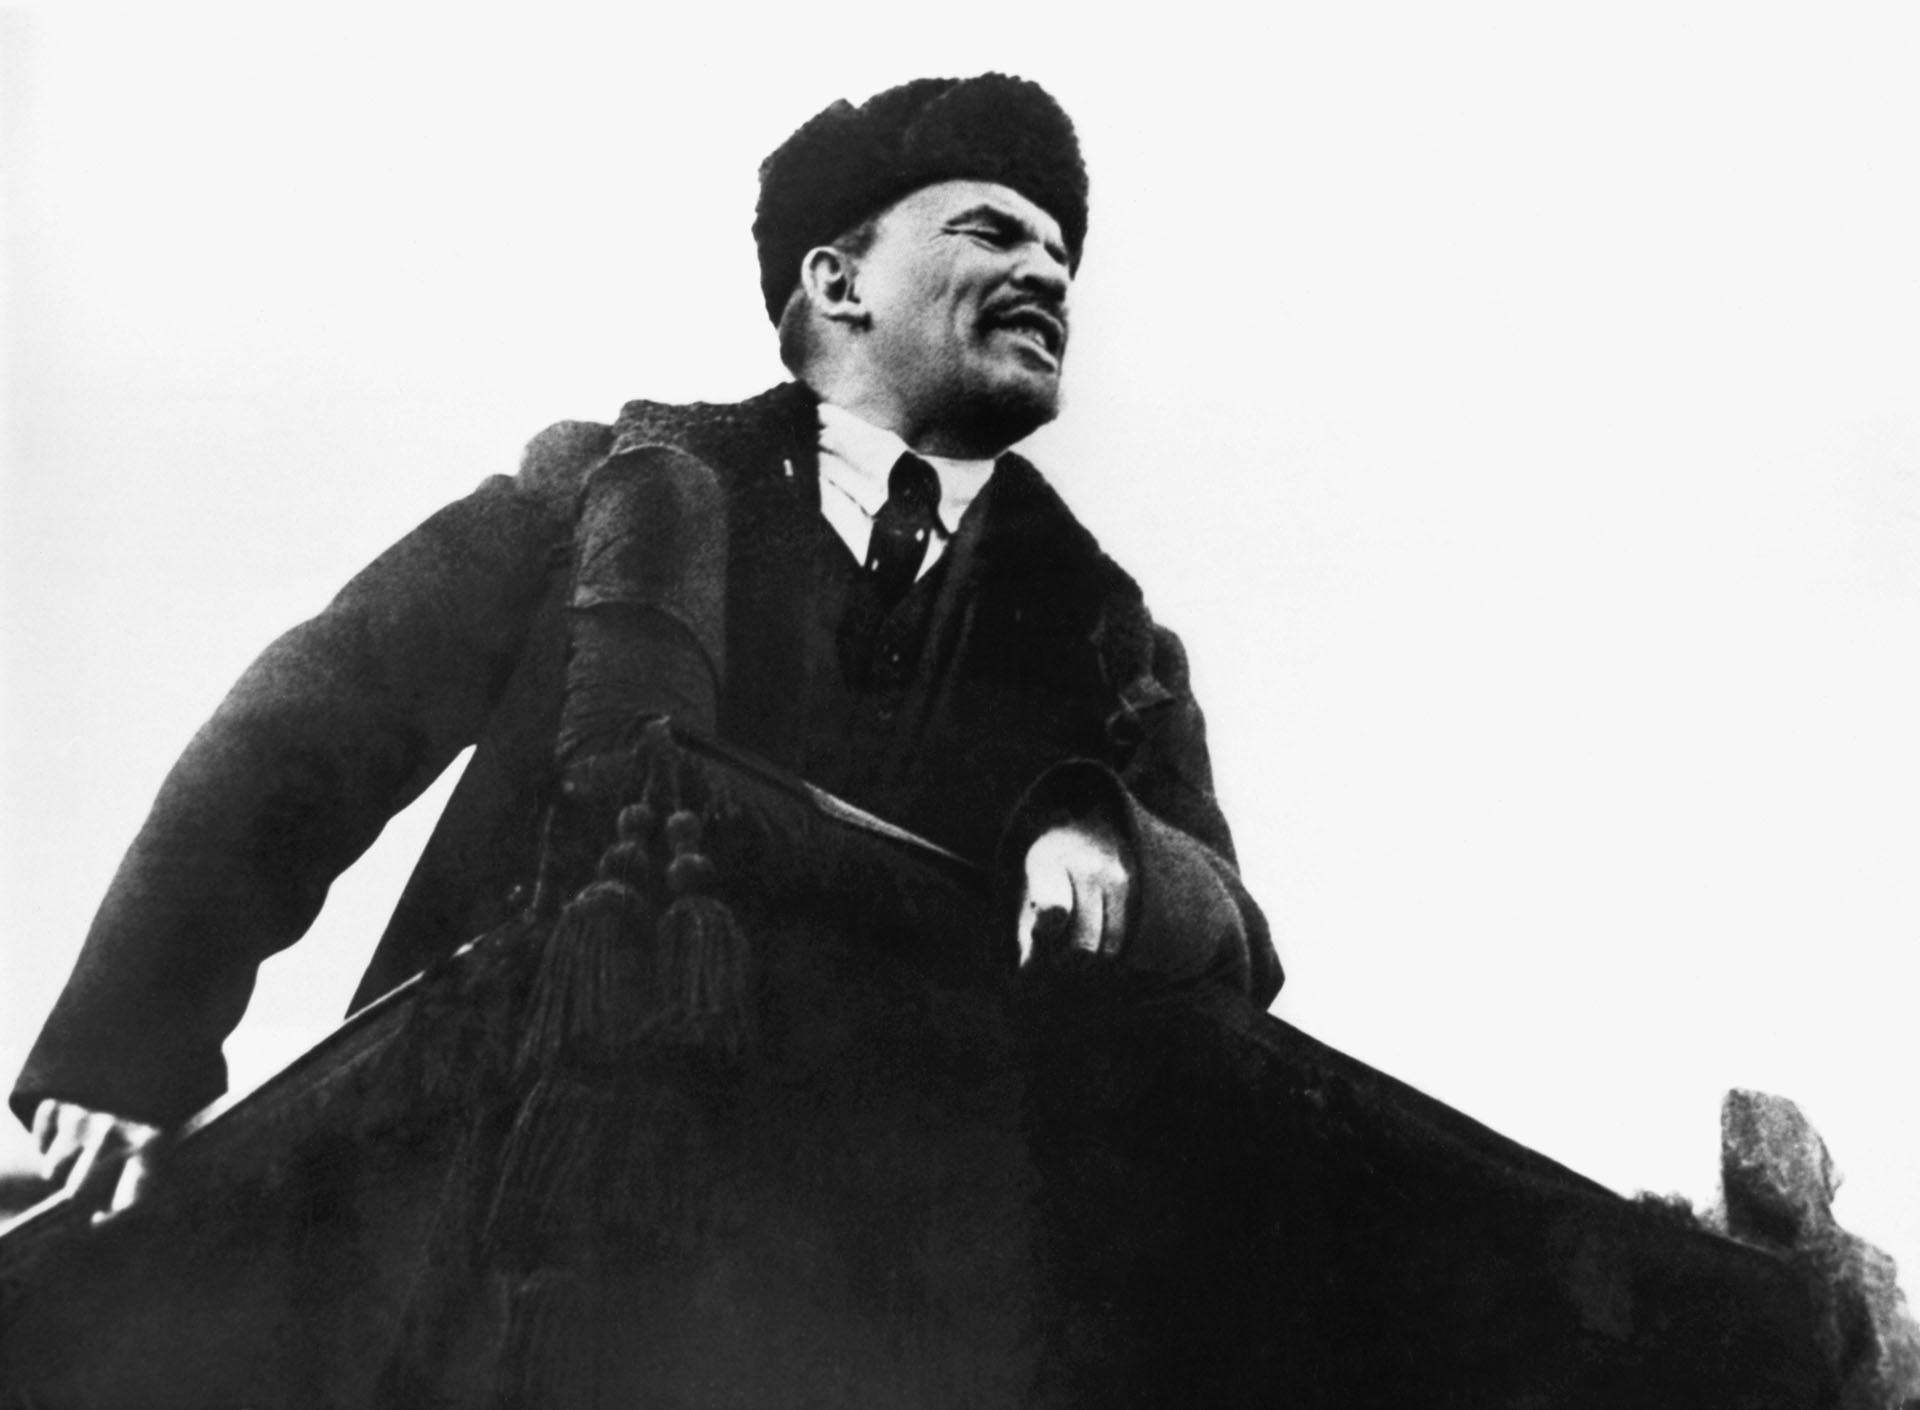 Vladimir Lenin (Photo by © Hulton-Deutsch Collection/CORBIS/Corbis via Getty Images)